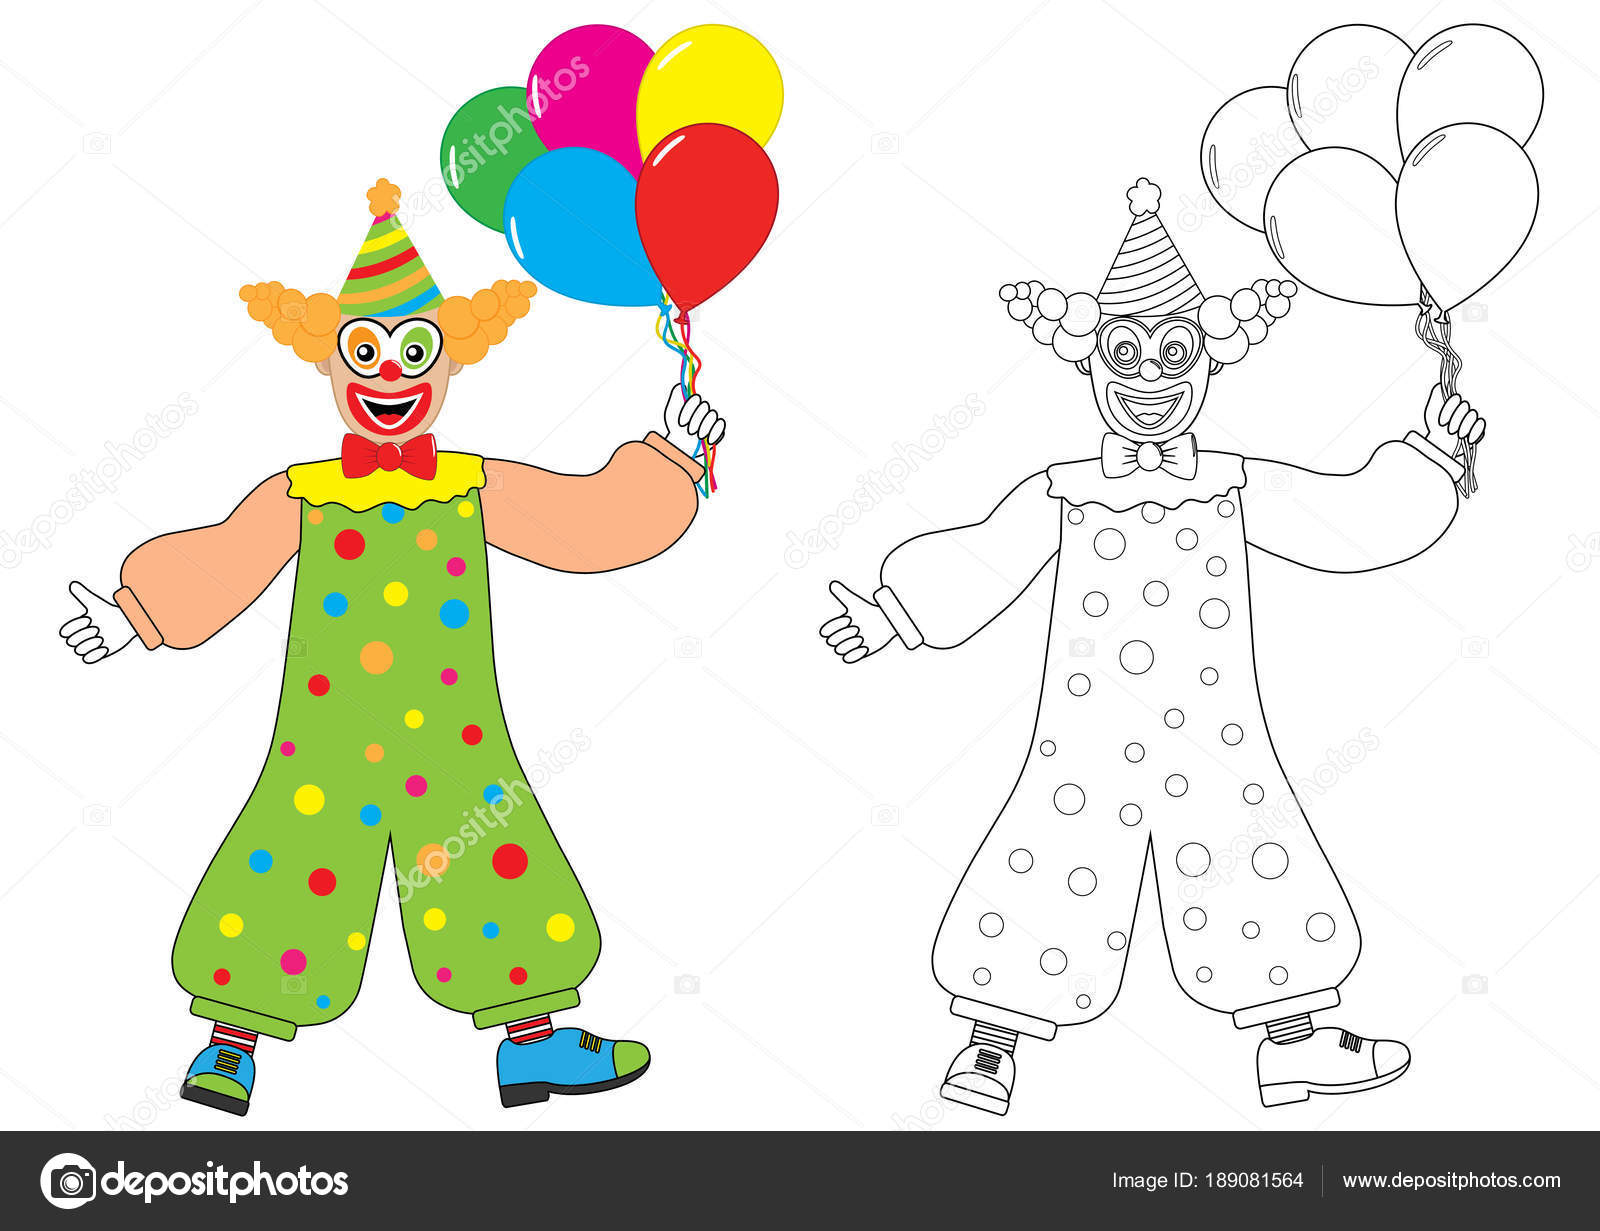 clown with balloons coloring book activity for children stock